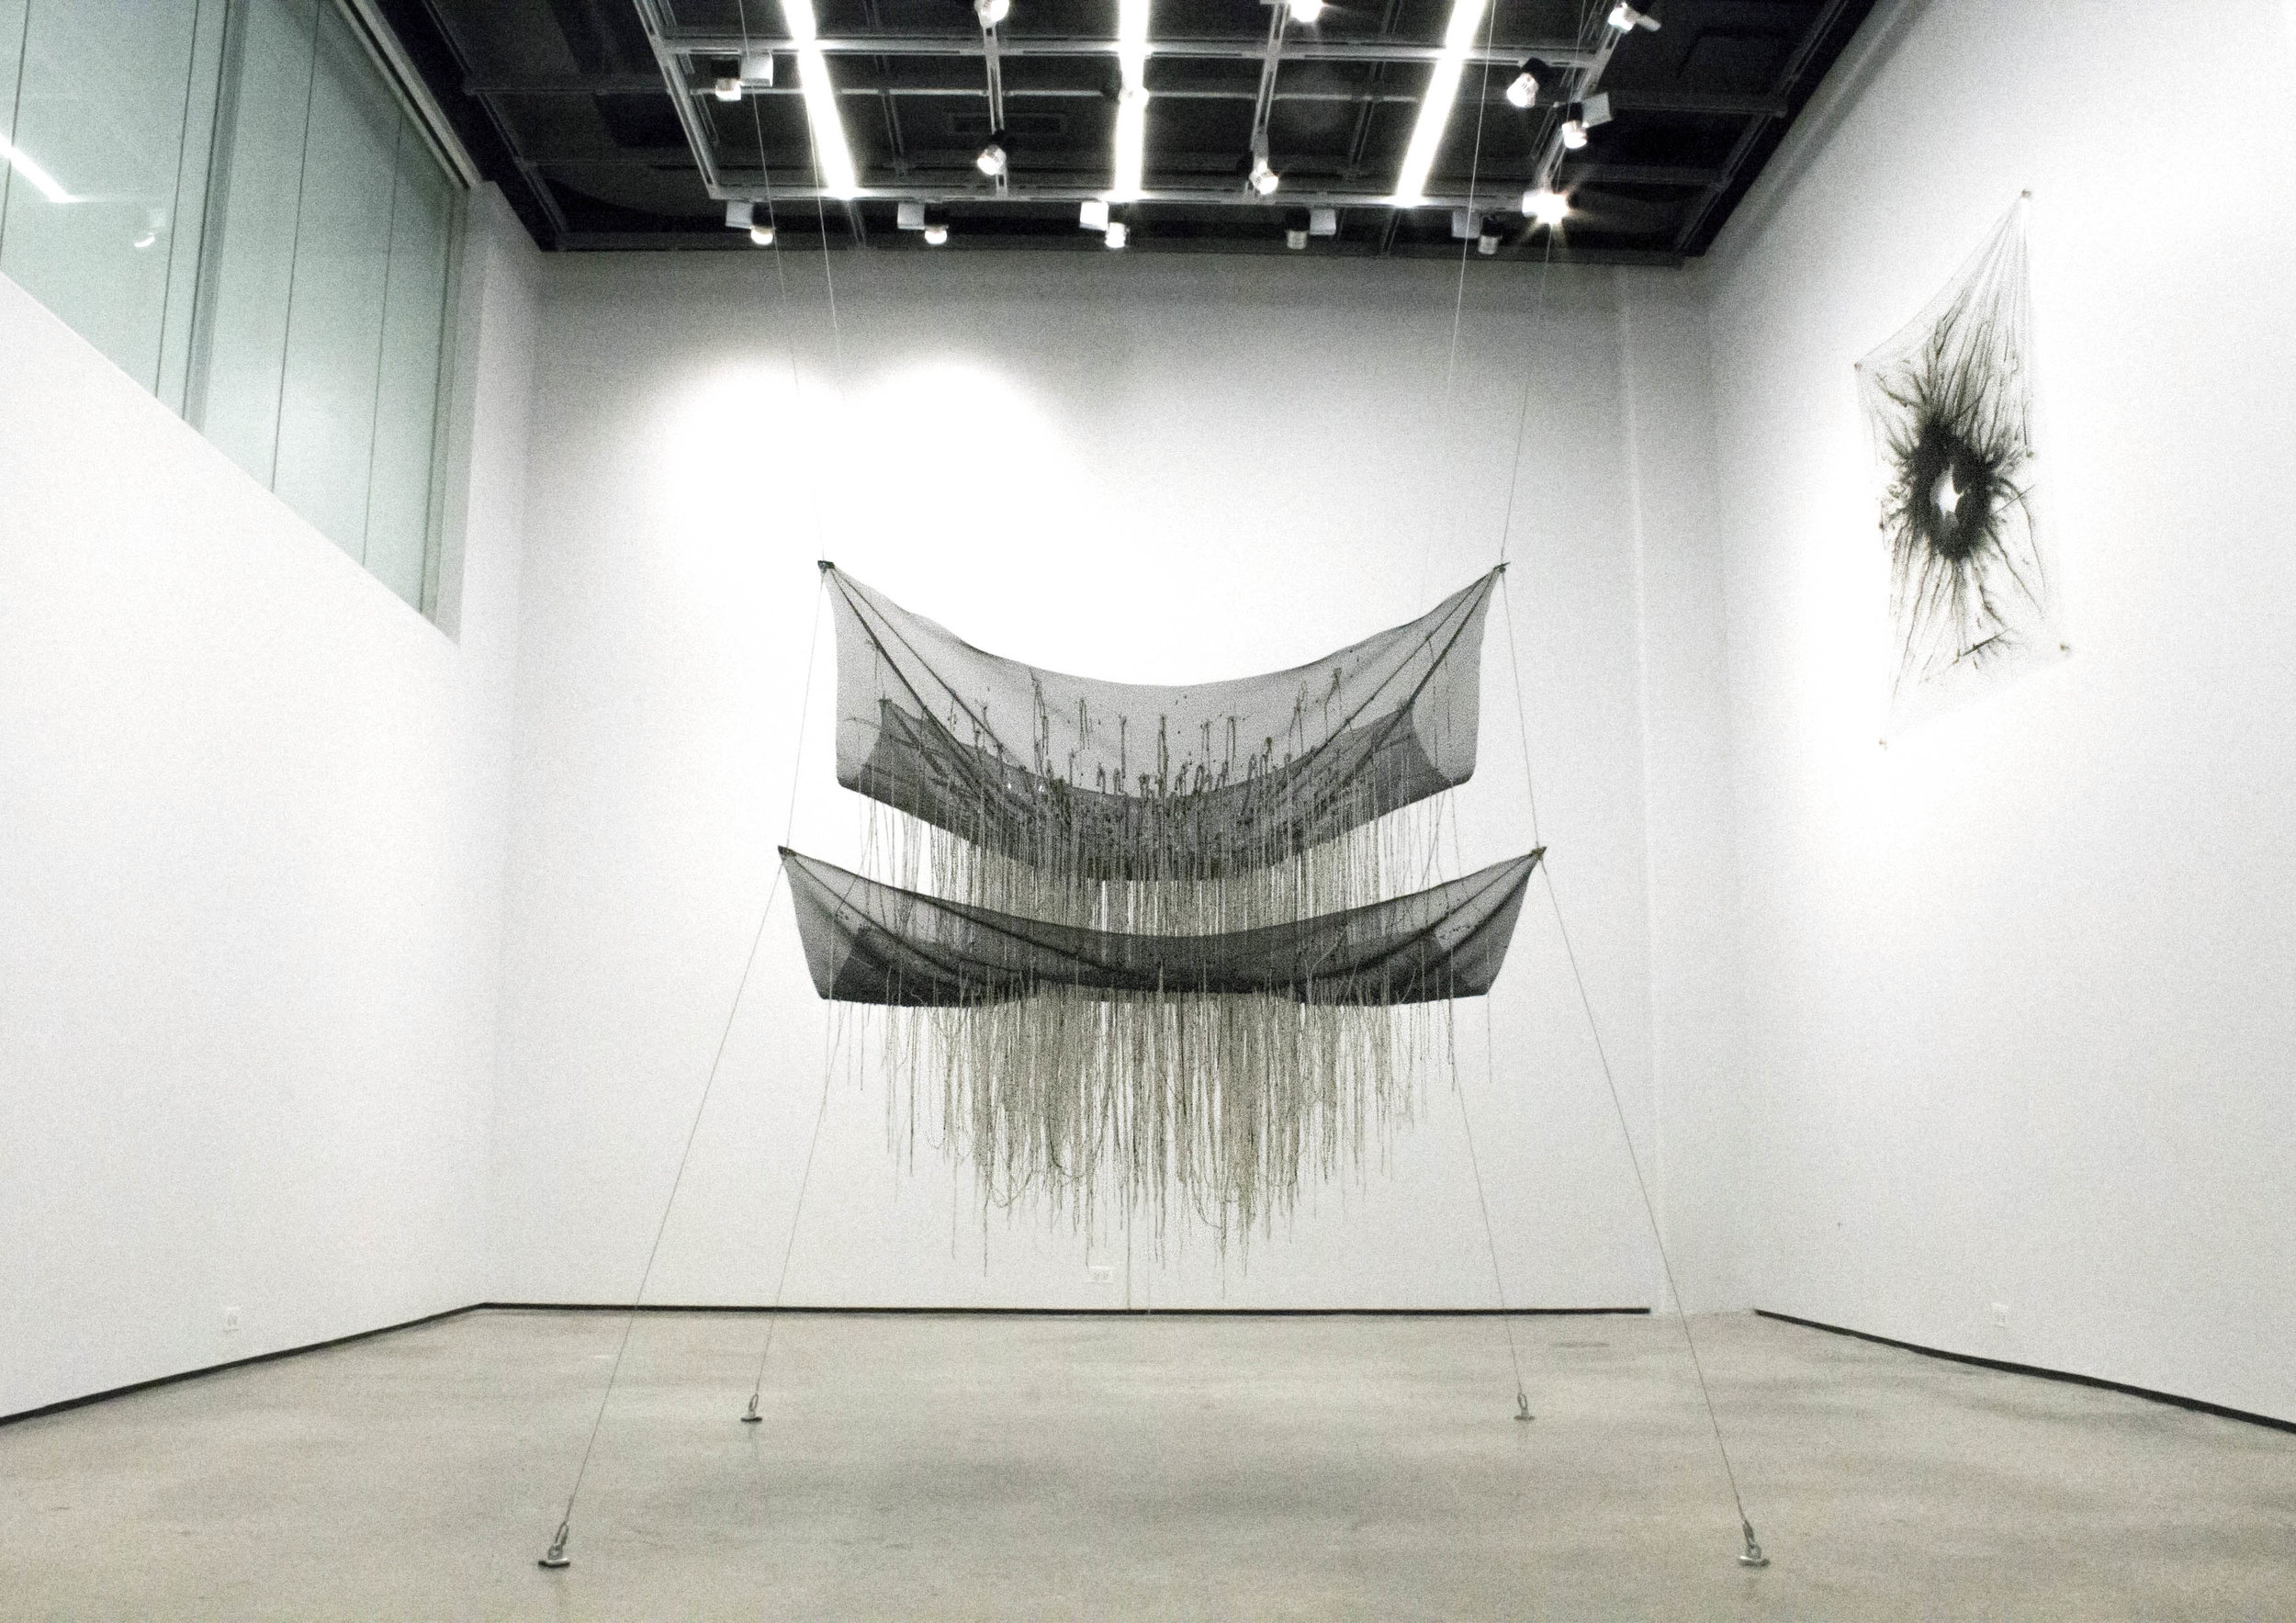 """To be a proper being"" , 2015 Cotton string, mesh, wire, clear plastic, rubber, 57"" x 72"" x 56"" (except wires)  Courtesy Kyungjin Kim & Carrie Able Gallery"